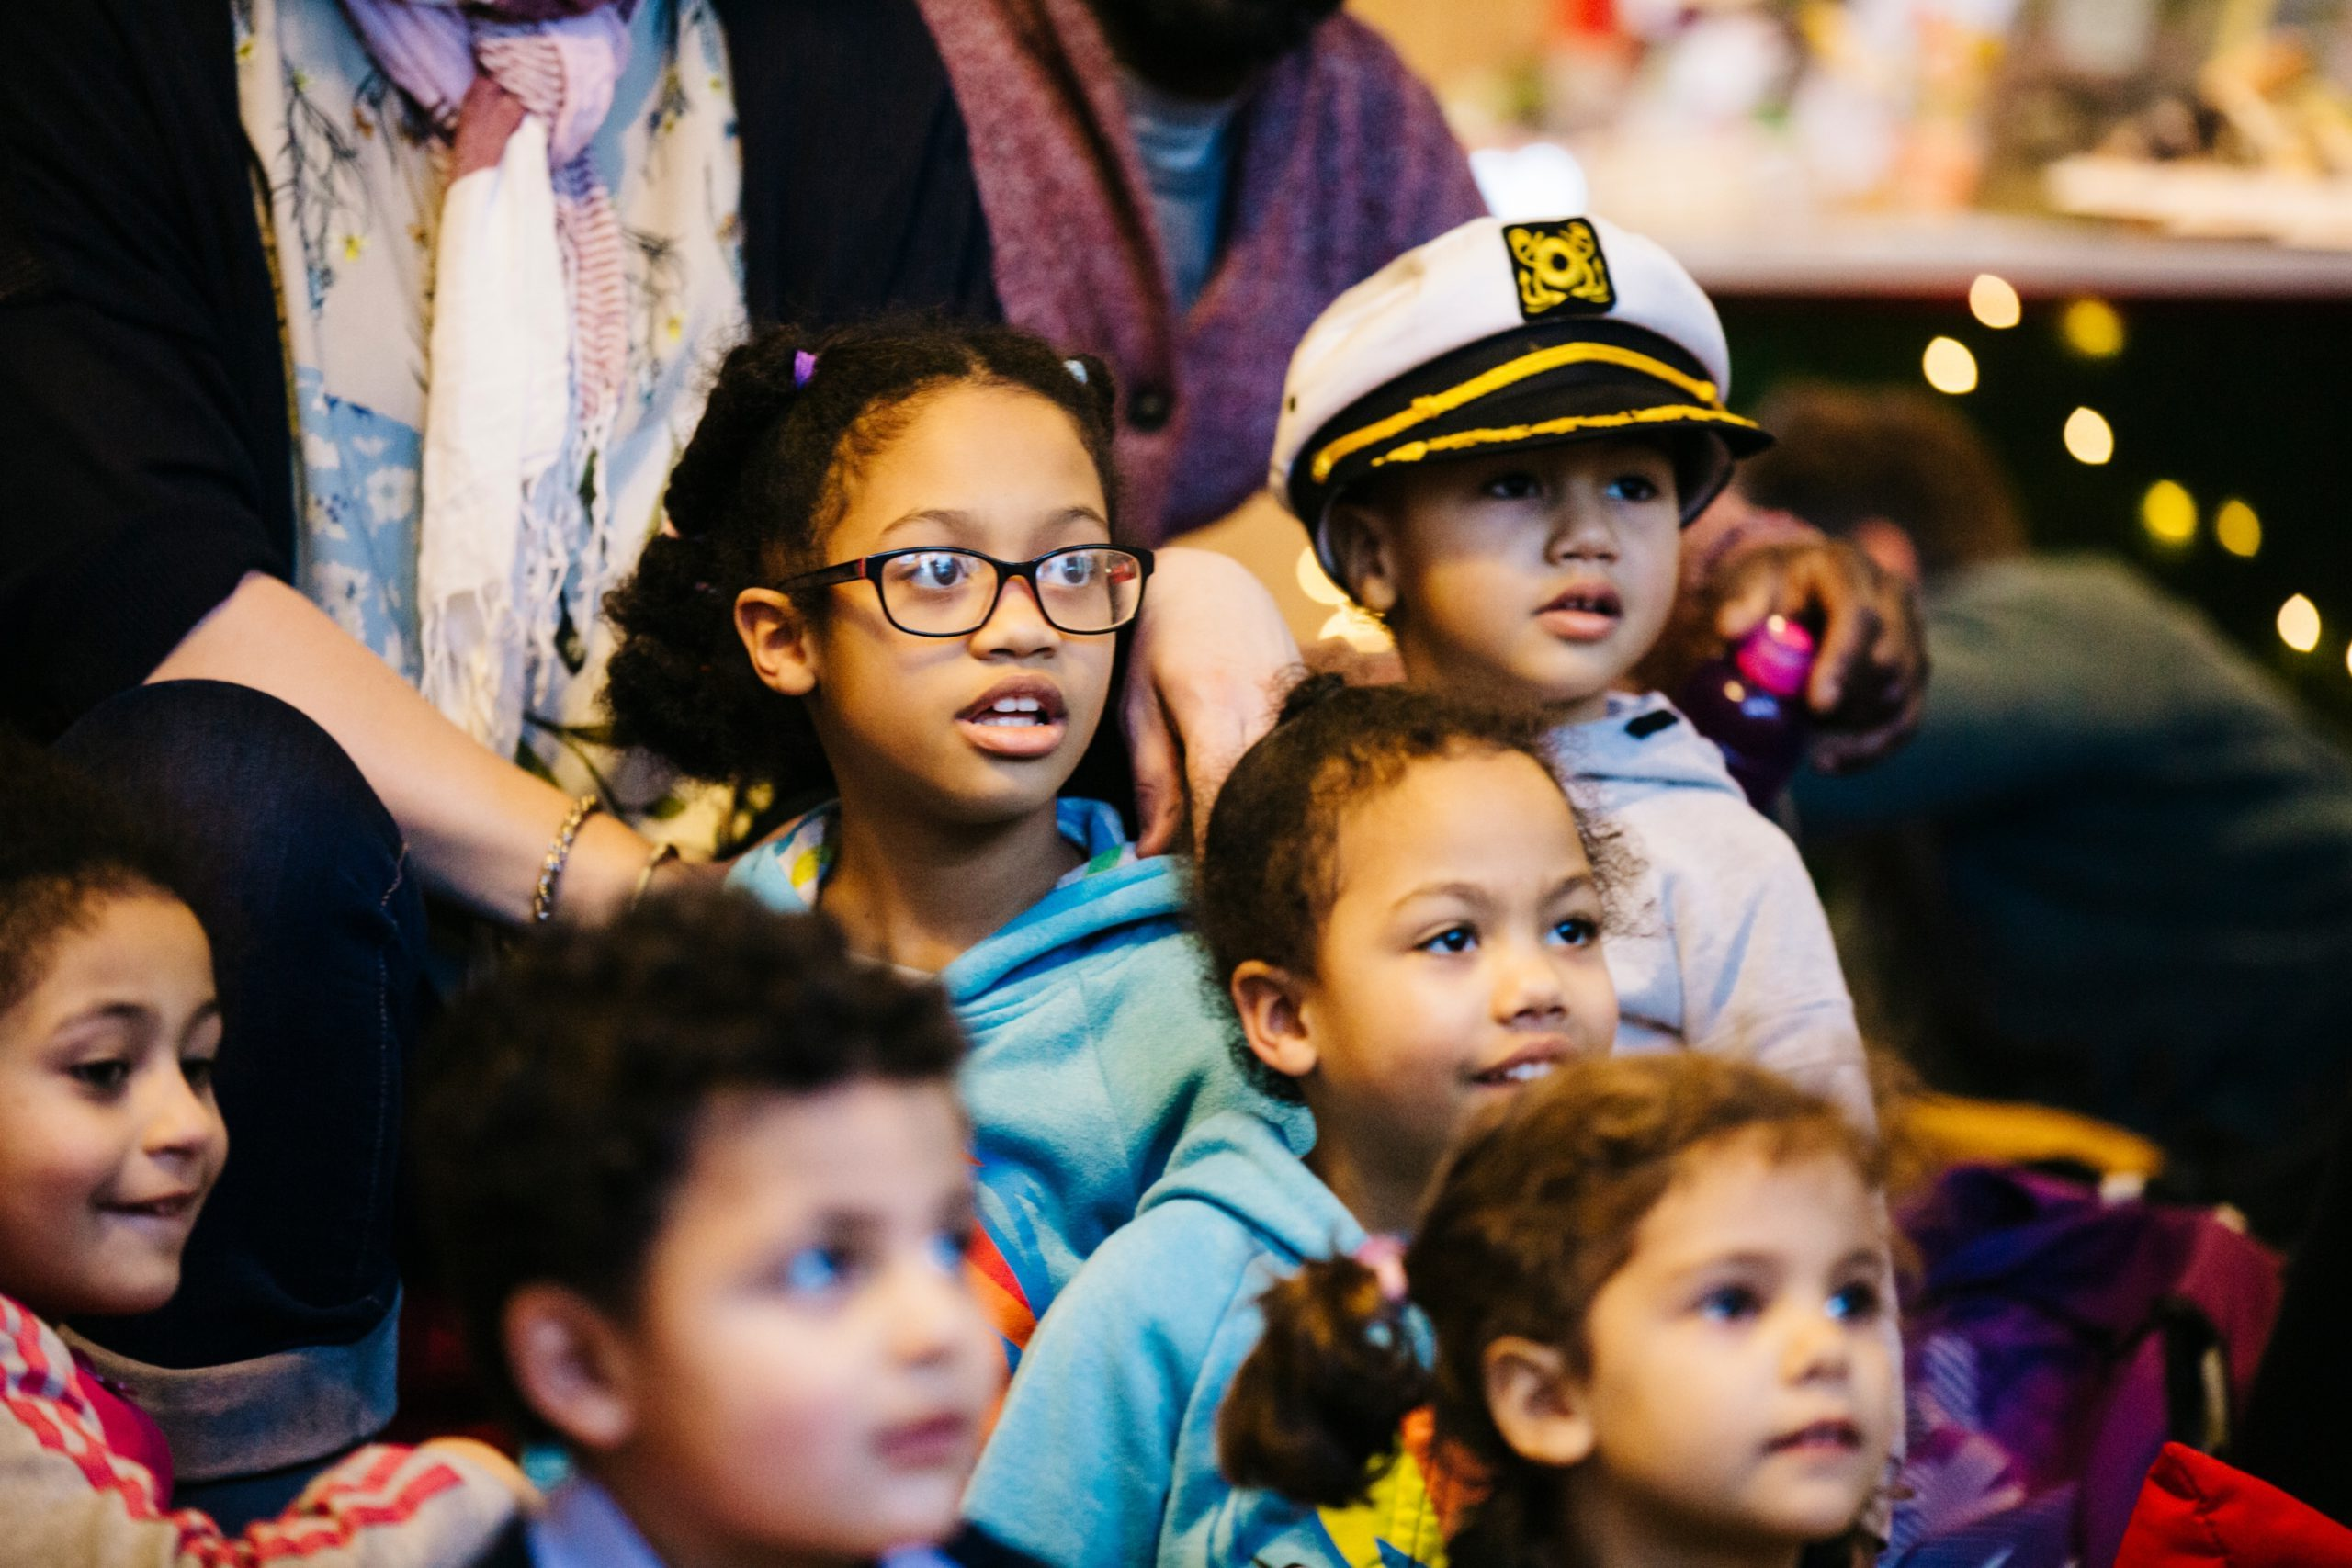 Children looking at a performance, one little boy with a sailor hat on